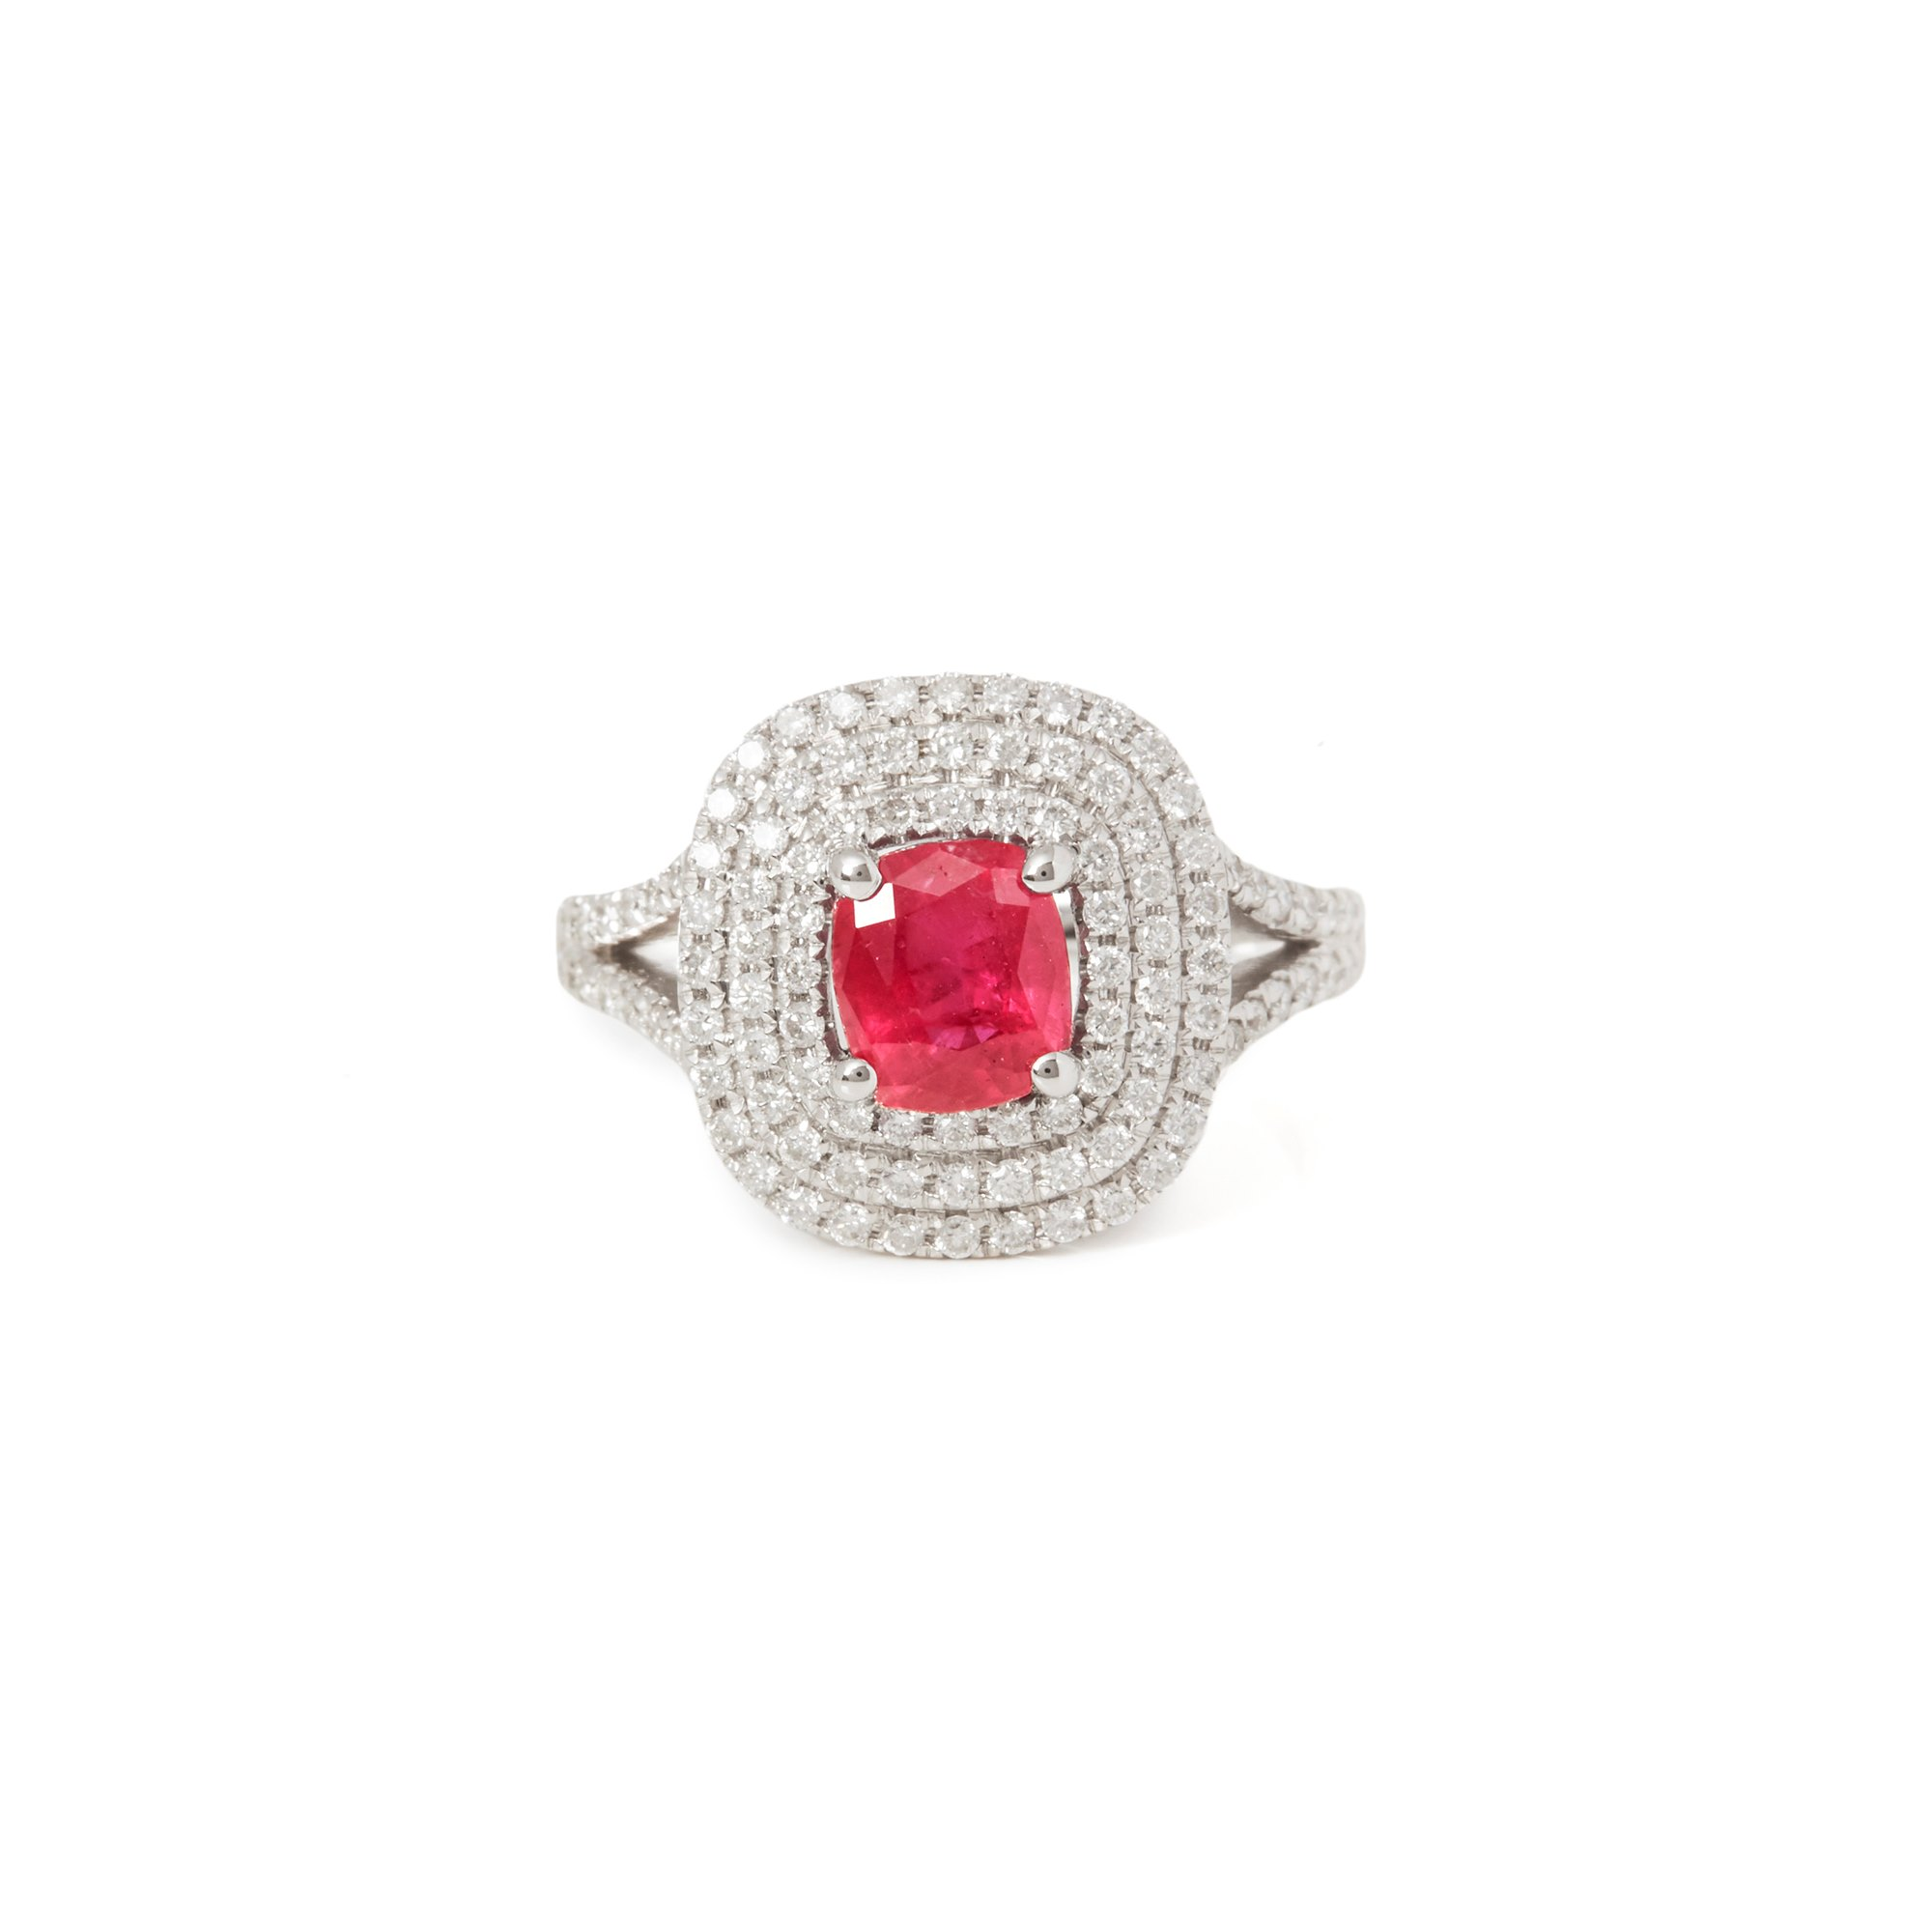 David Jerome Certified 1.50ct Untreated Cushion Cut Ruby and Diamond Ring